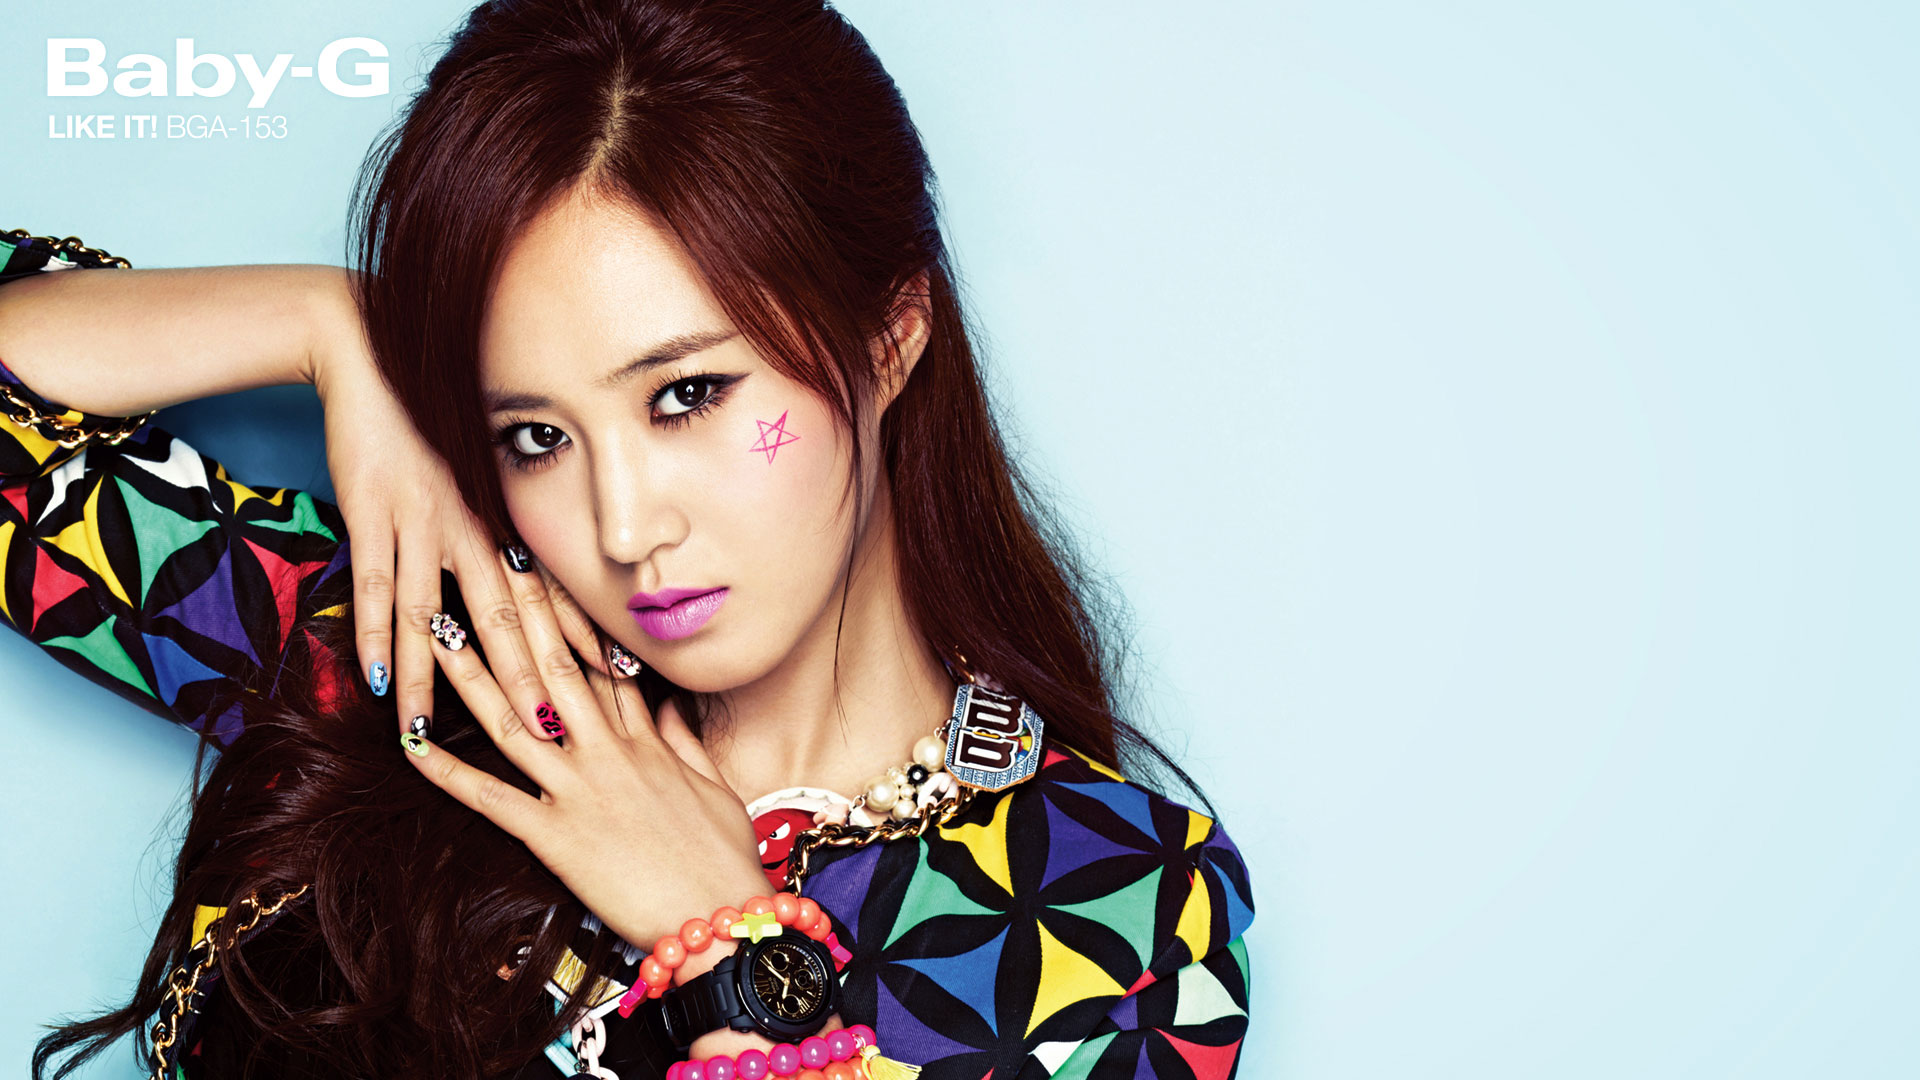 Snsd Yuri Casio Baby G wallpaper